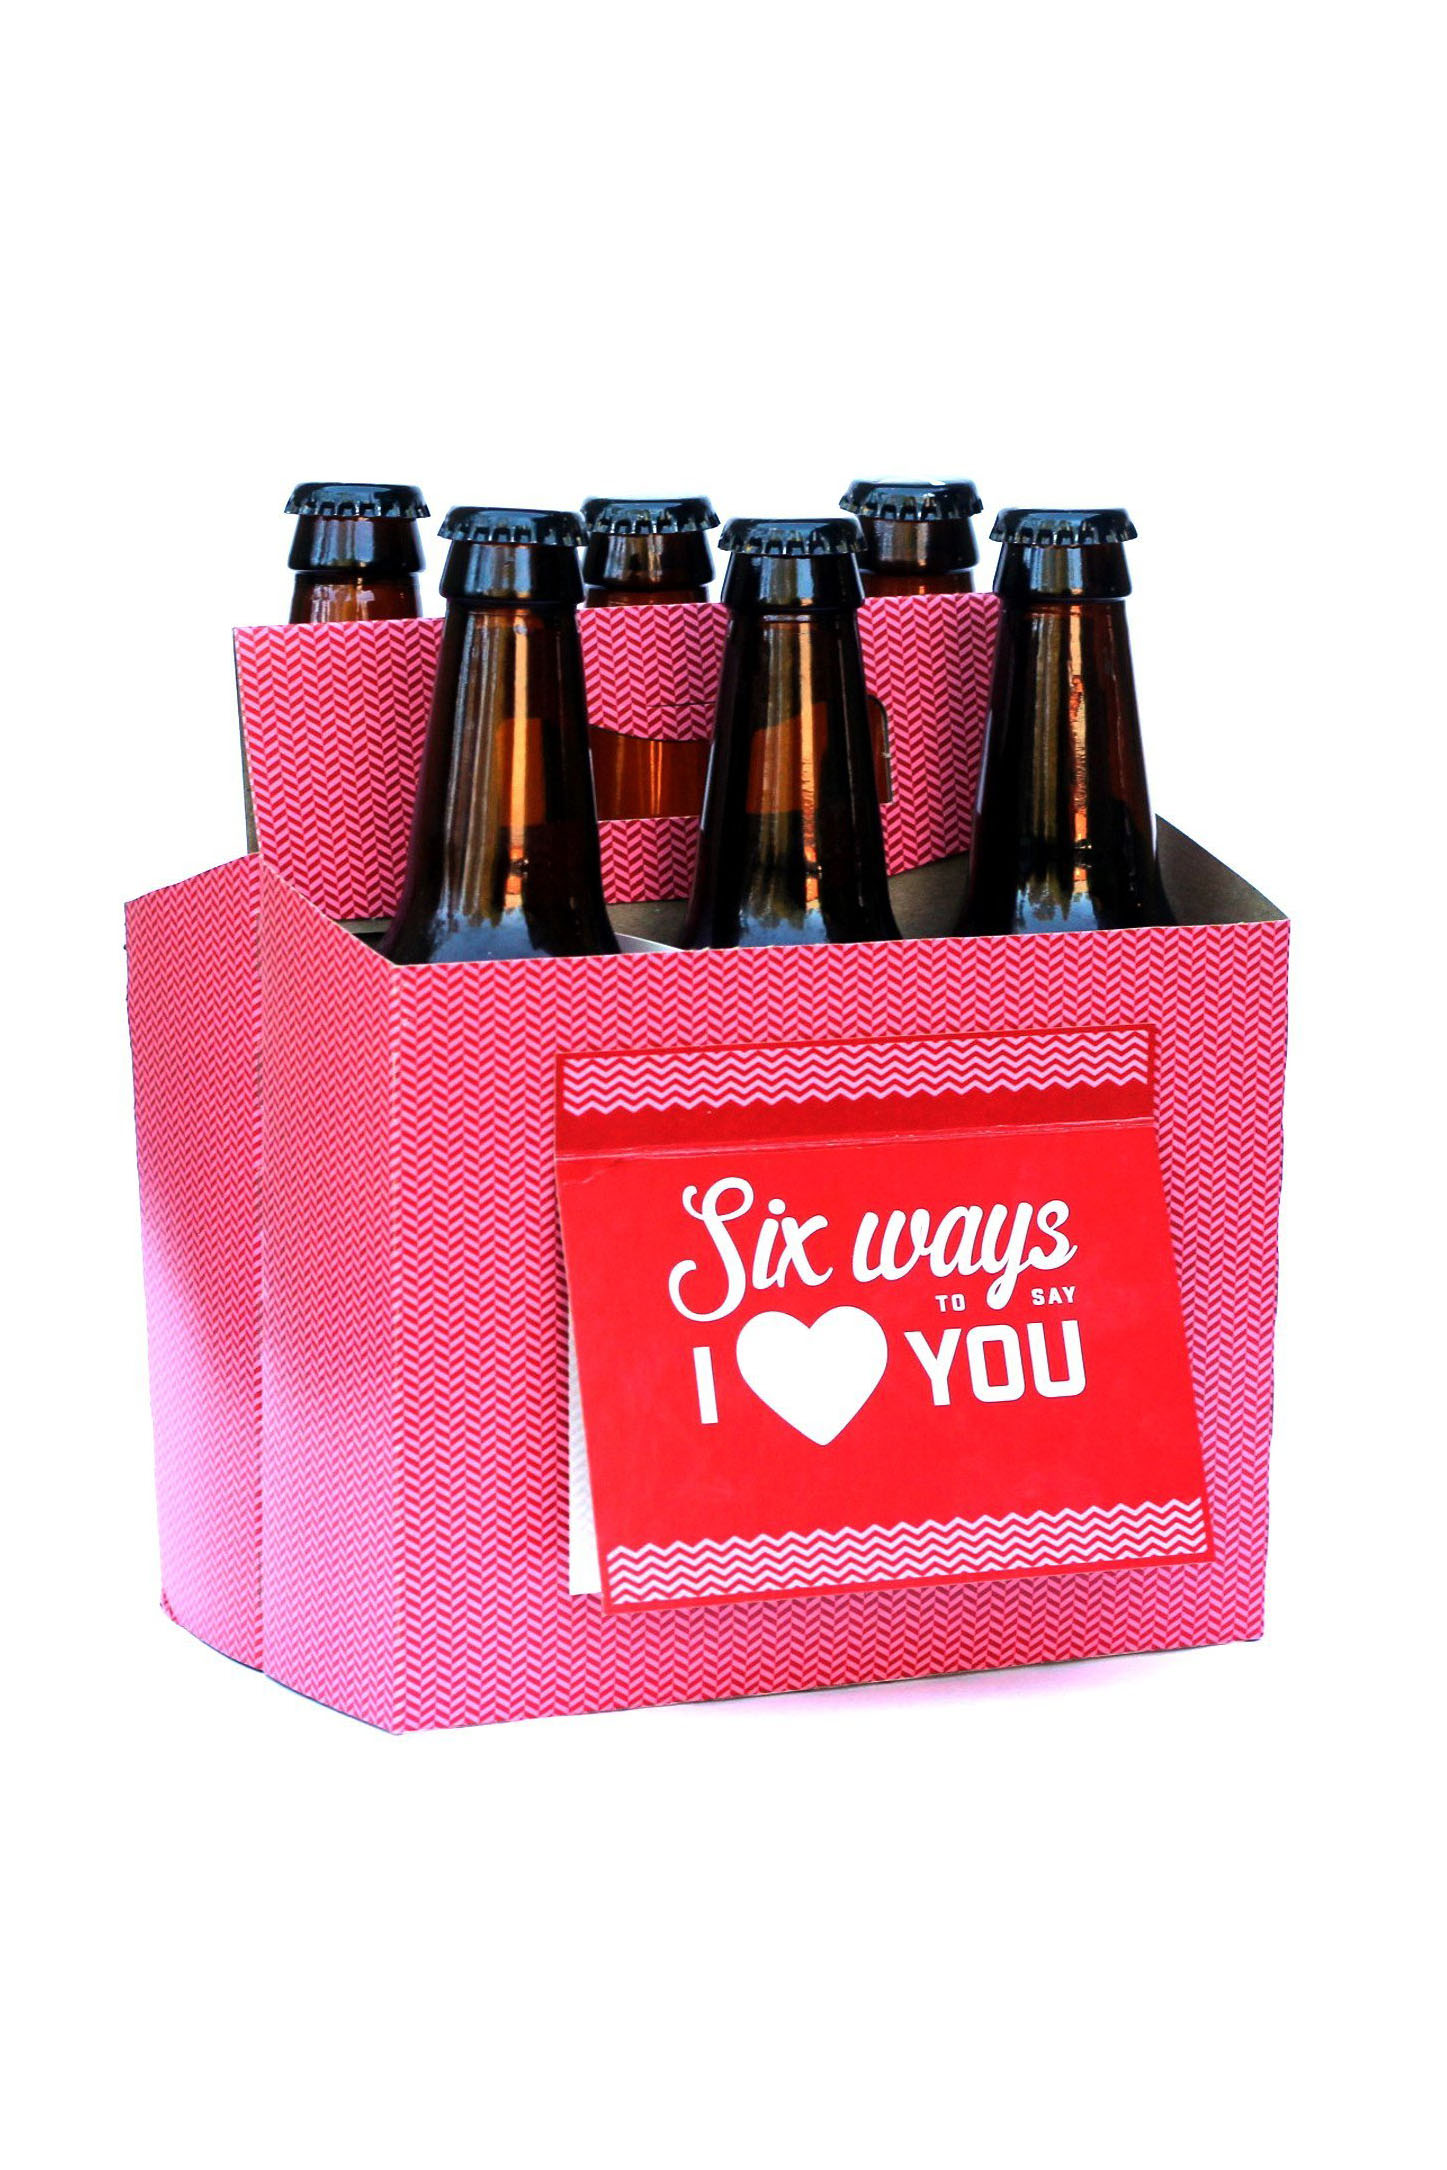 30 Best Valentines Day Gifts For Him 2017 Good Ideas